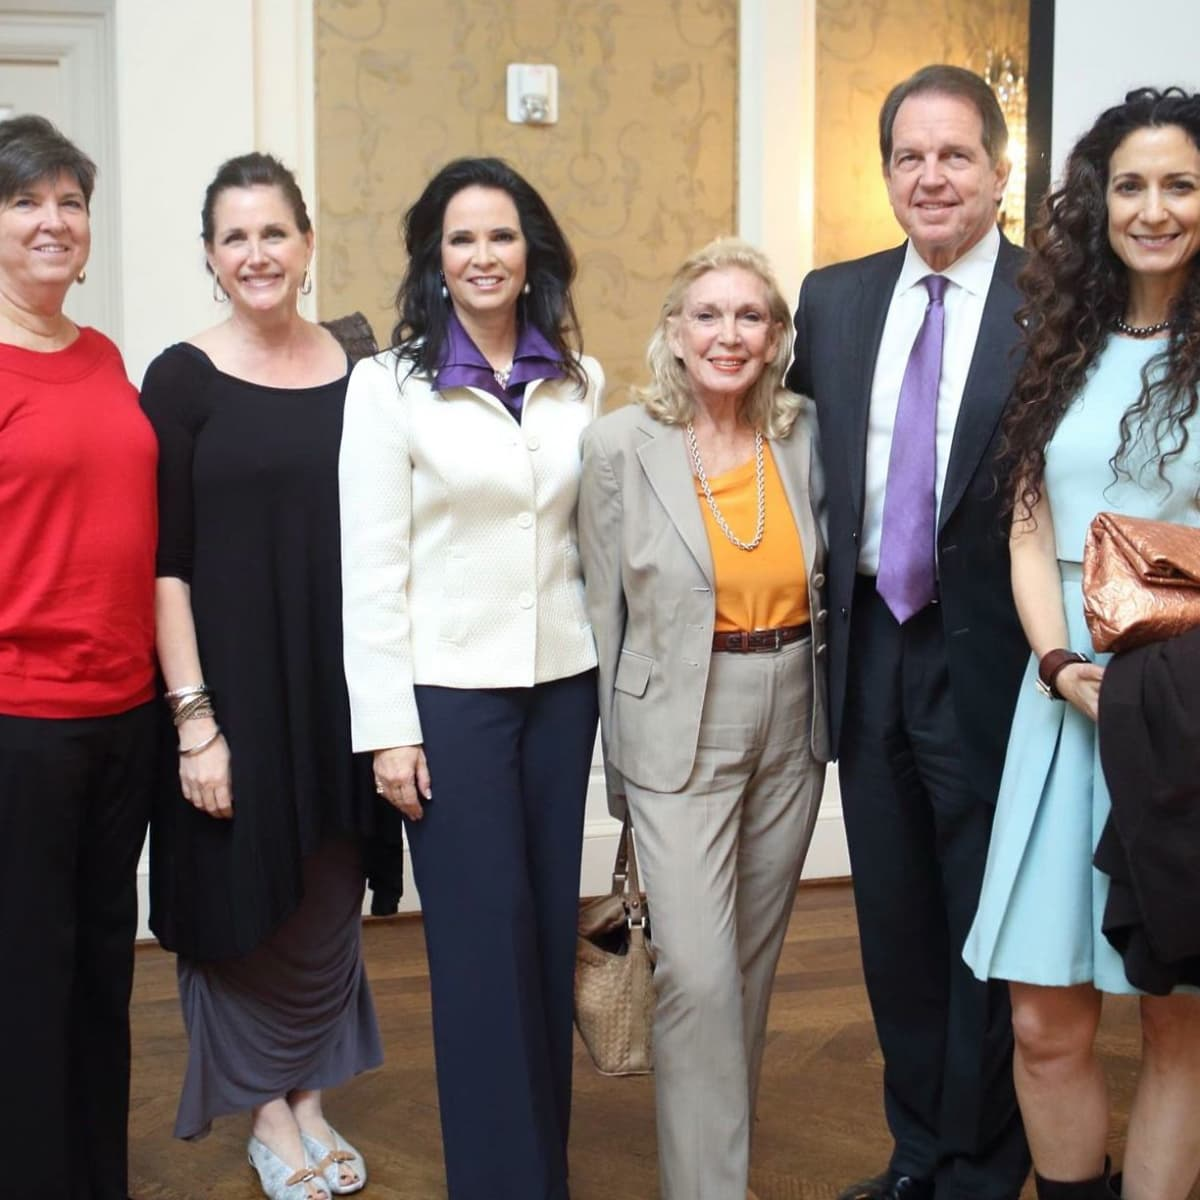 Patricia Ford, Lisa Wikson, Anita Wilson, Joanne Wilson, Welcome Wilson, Jr., Rene Flood at Alzheimer's Association AWARE Luncheon